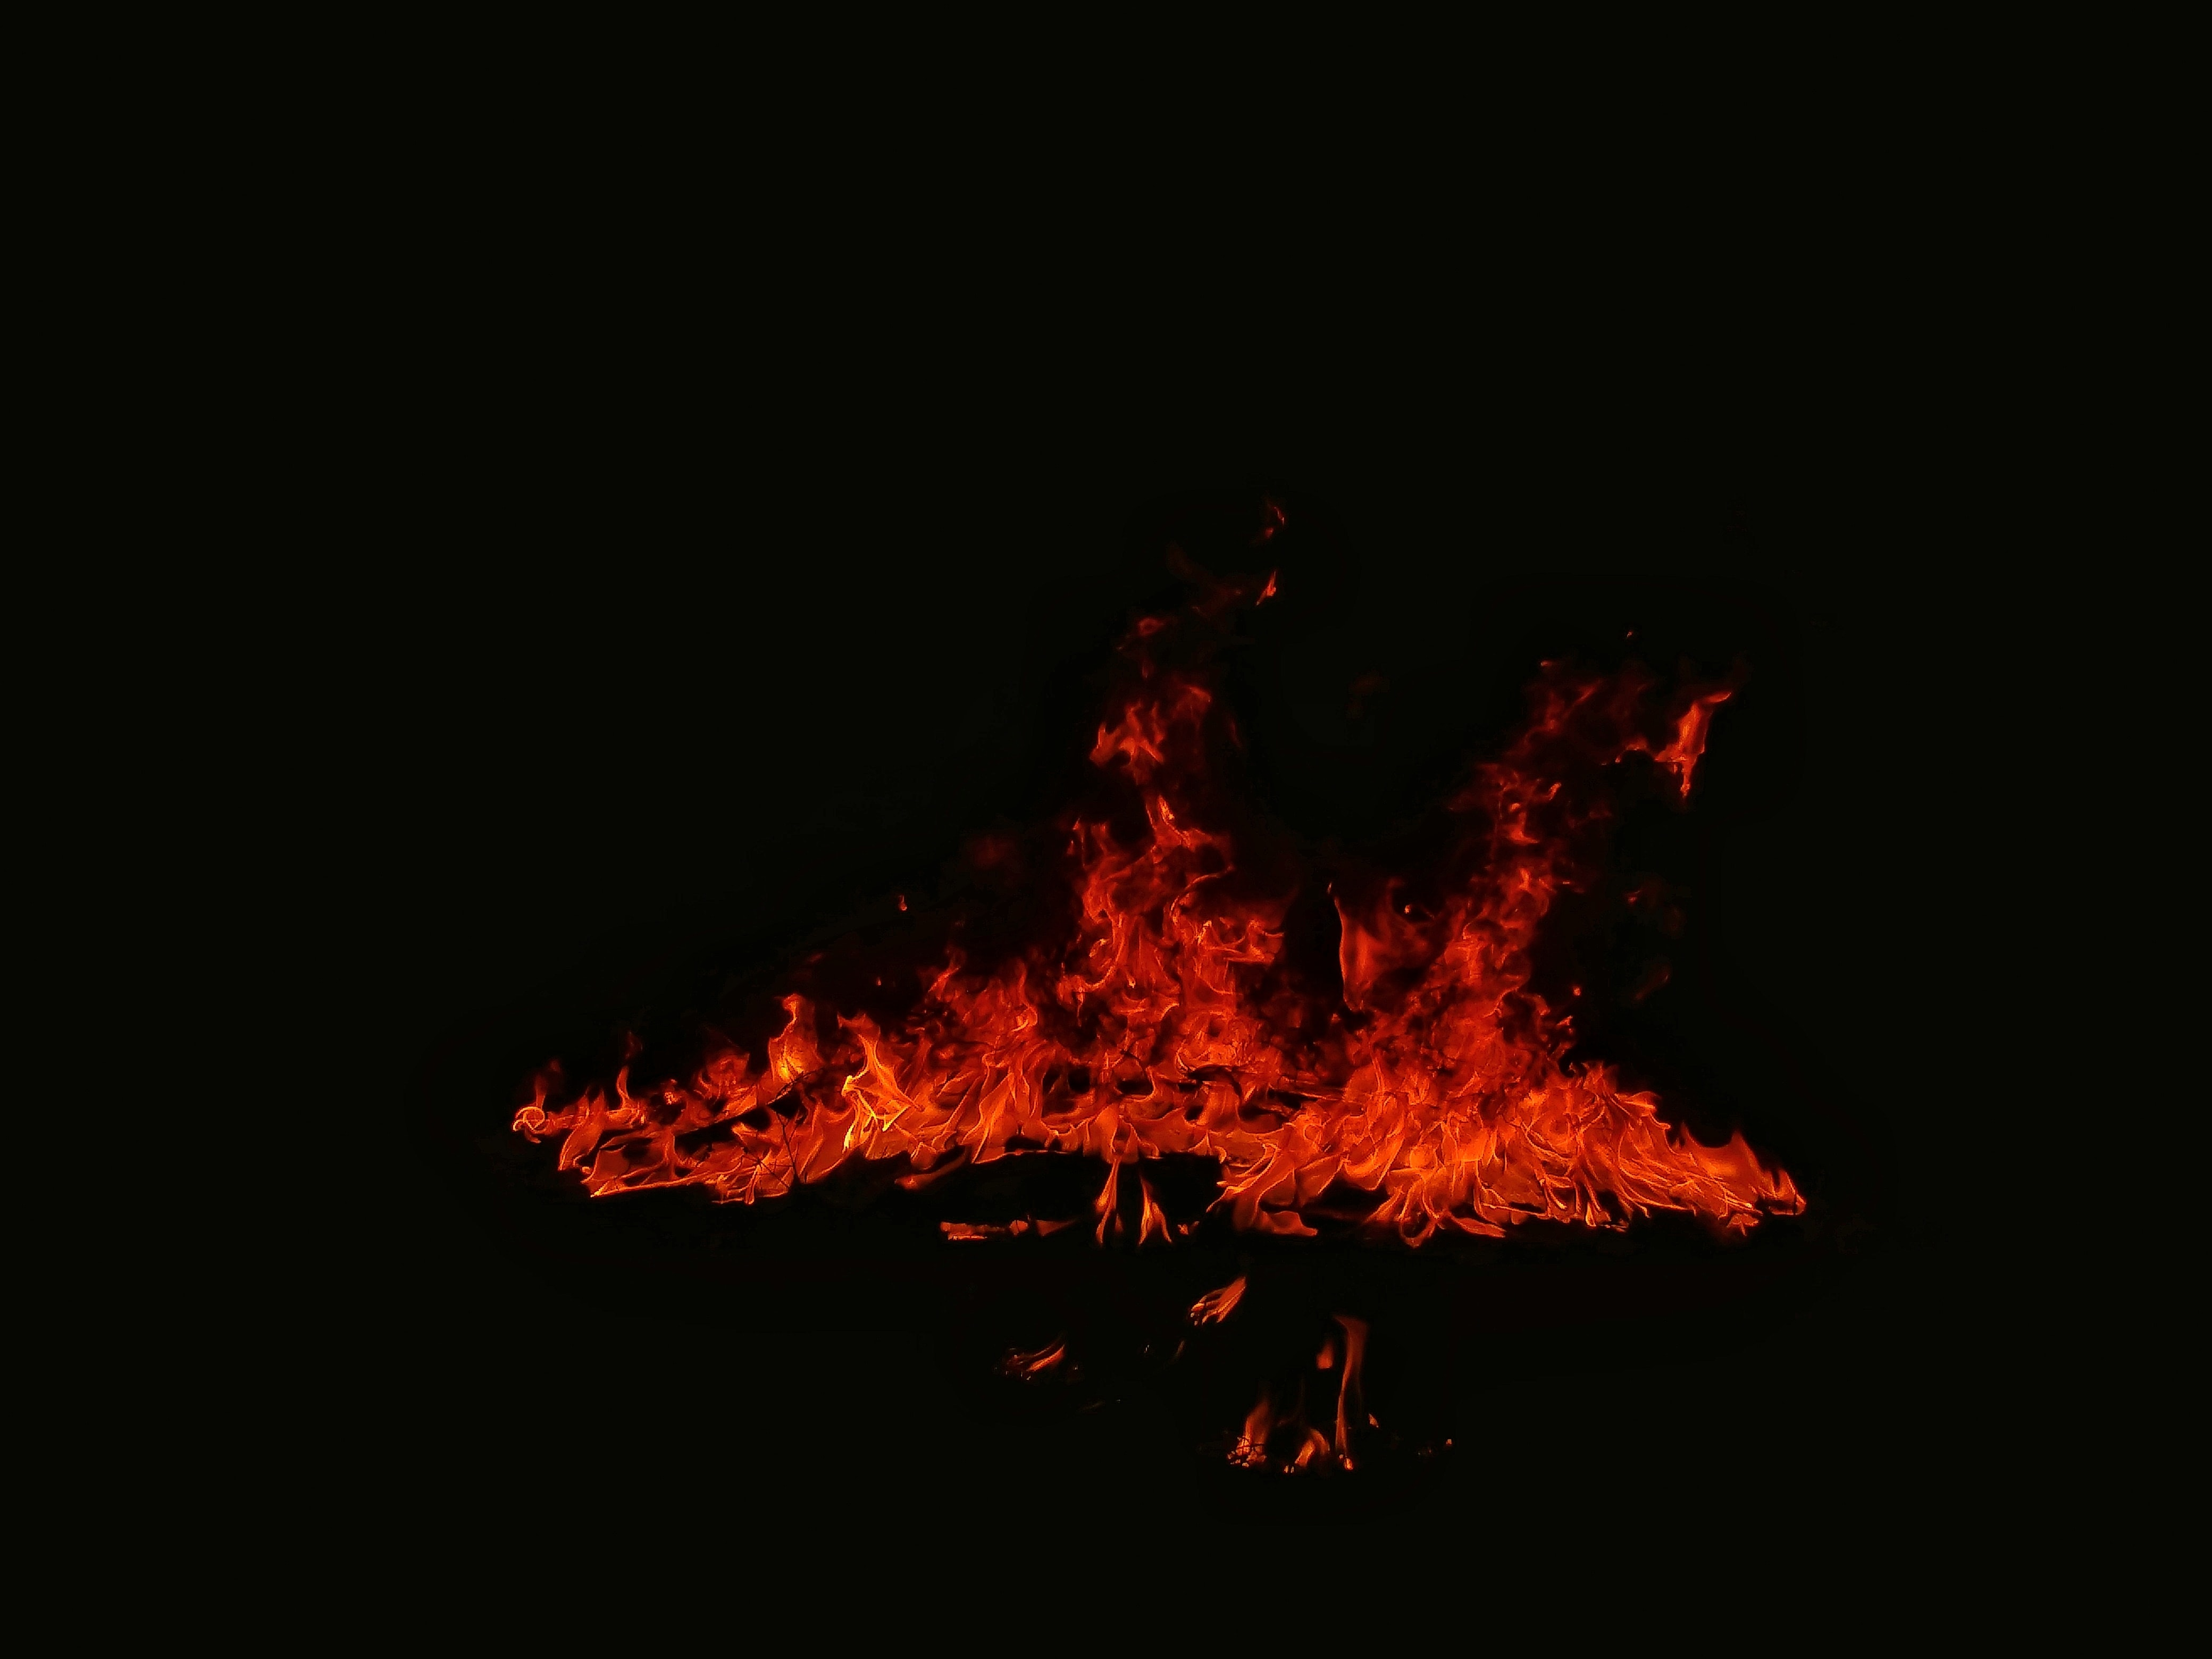 photo of bonfire during nighttime